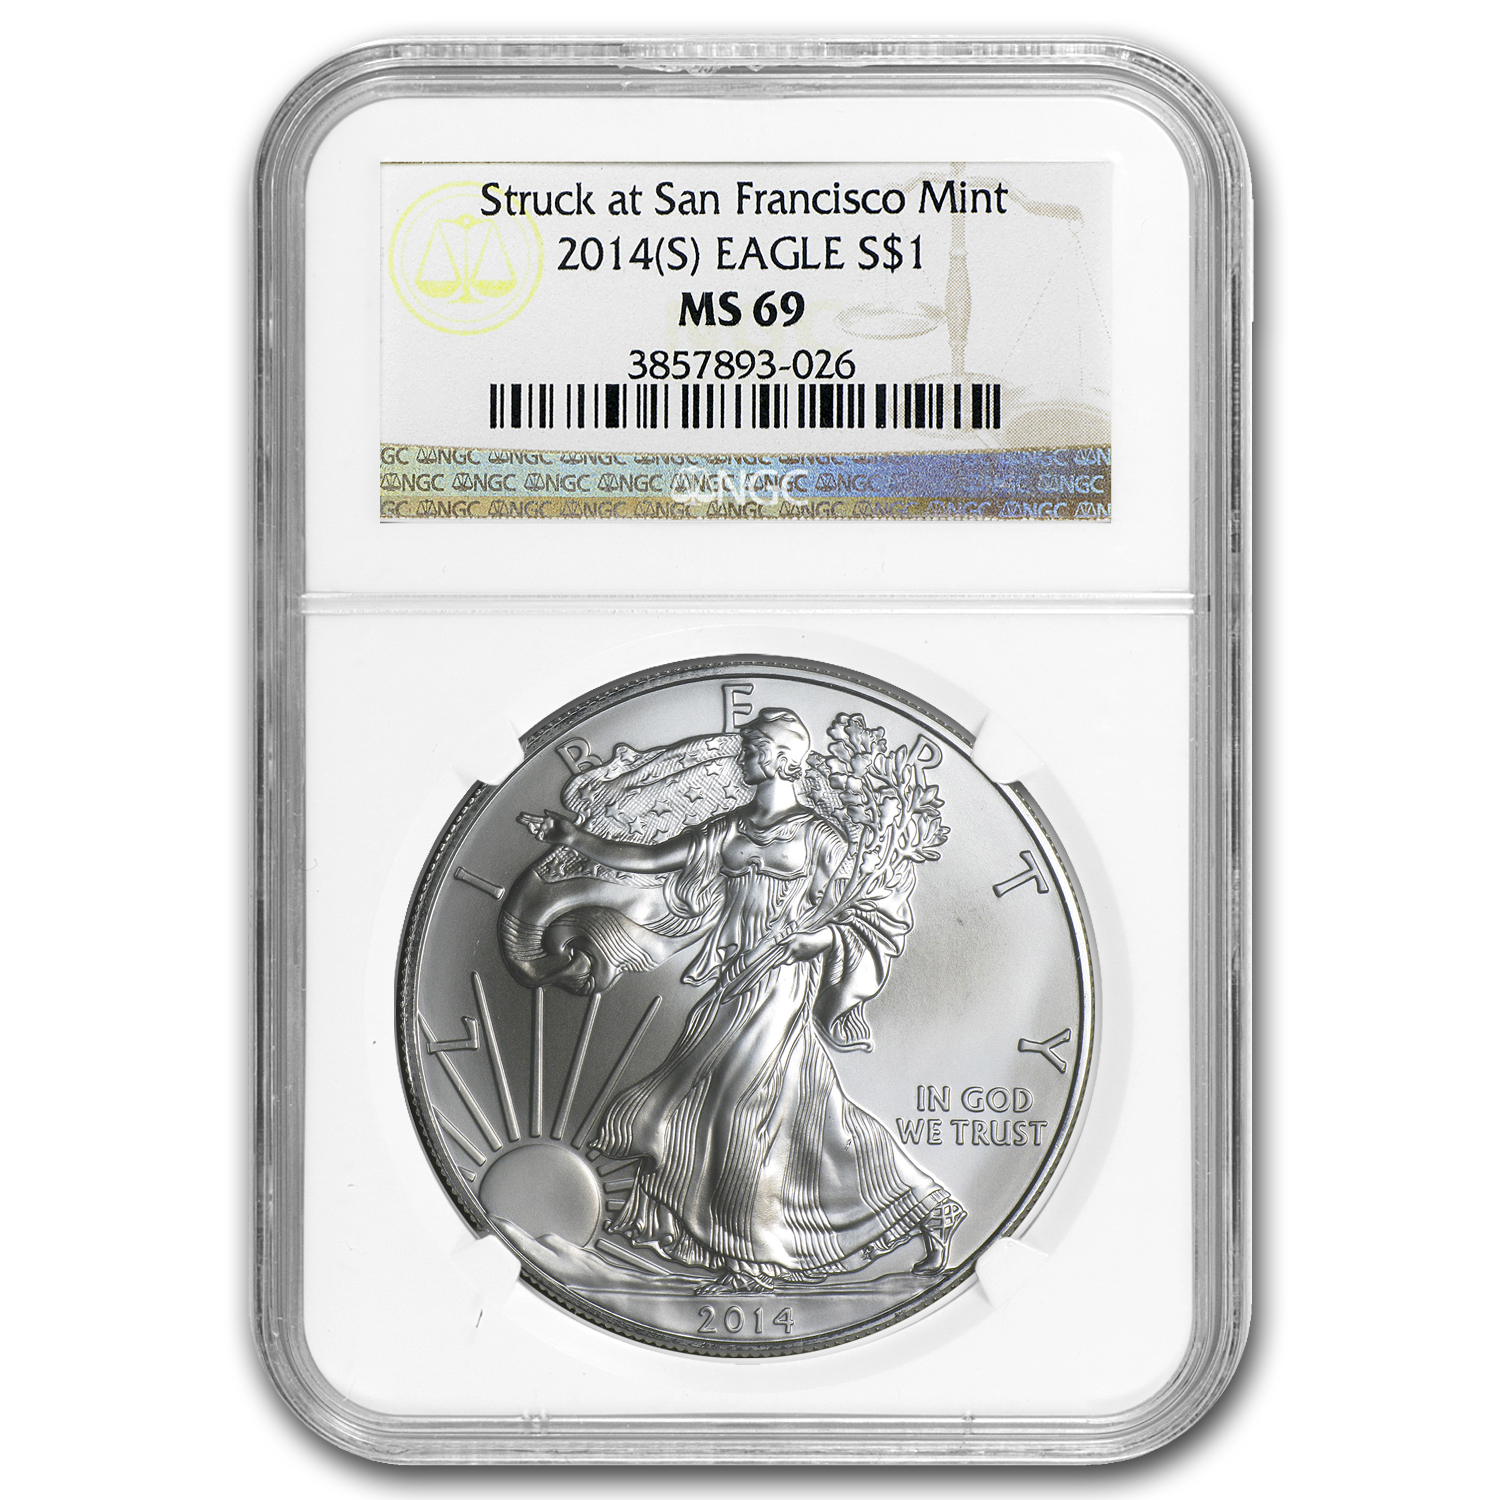 2014 (S) Silver American Eagle MS-69 NGC